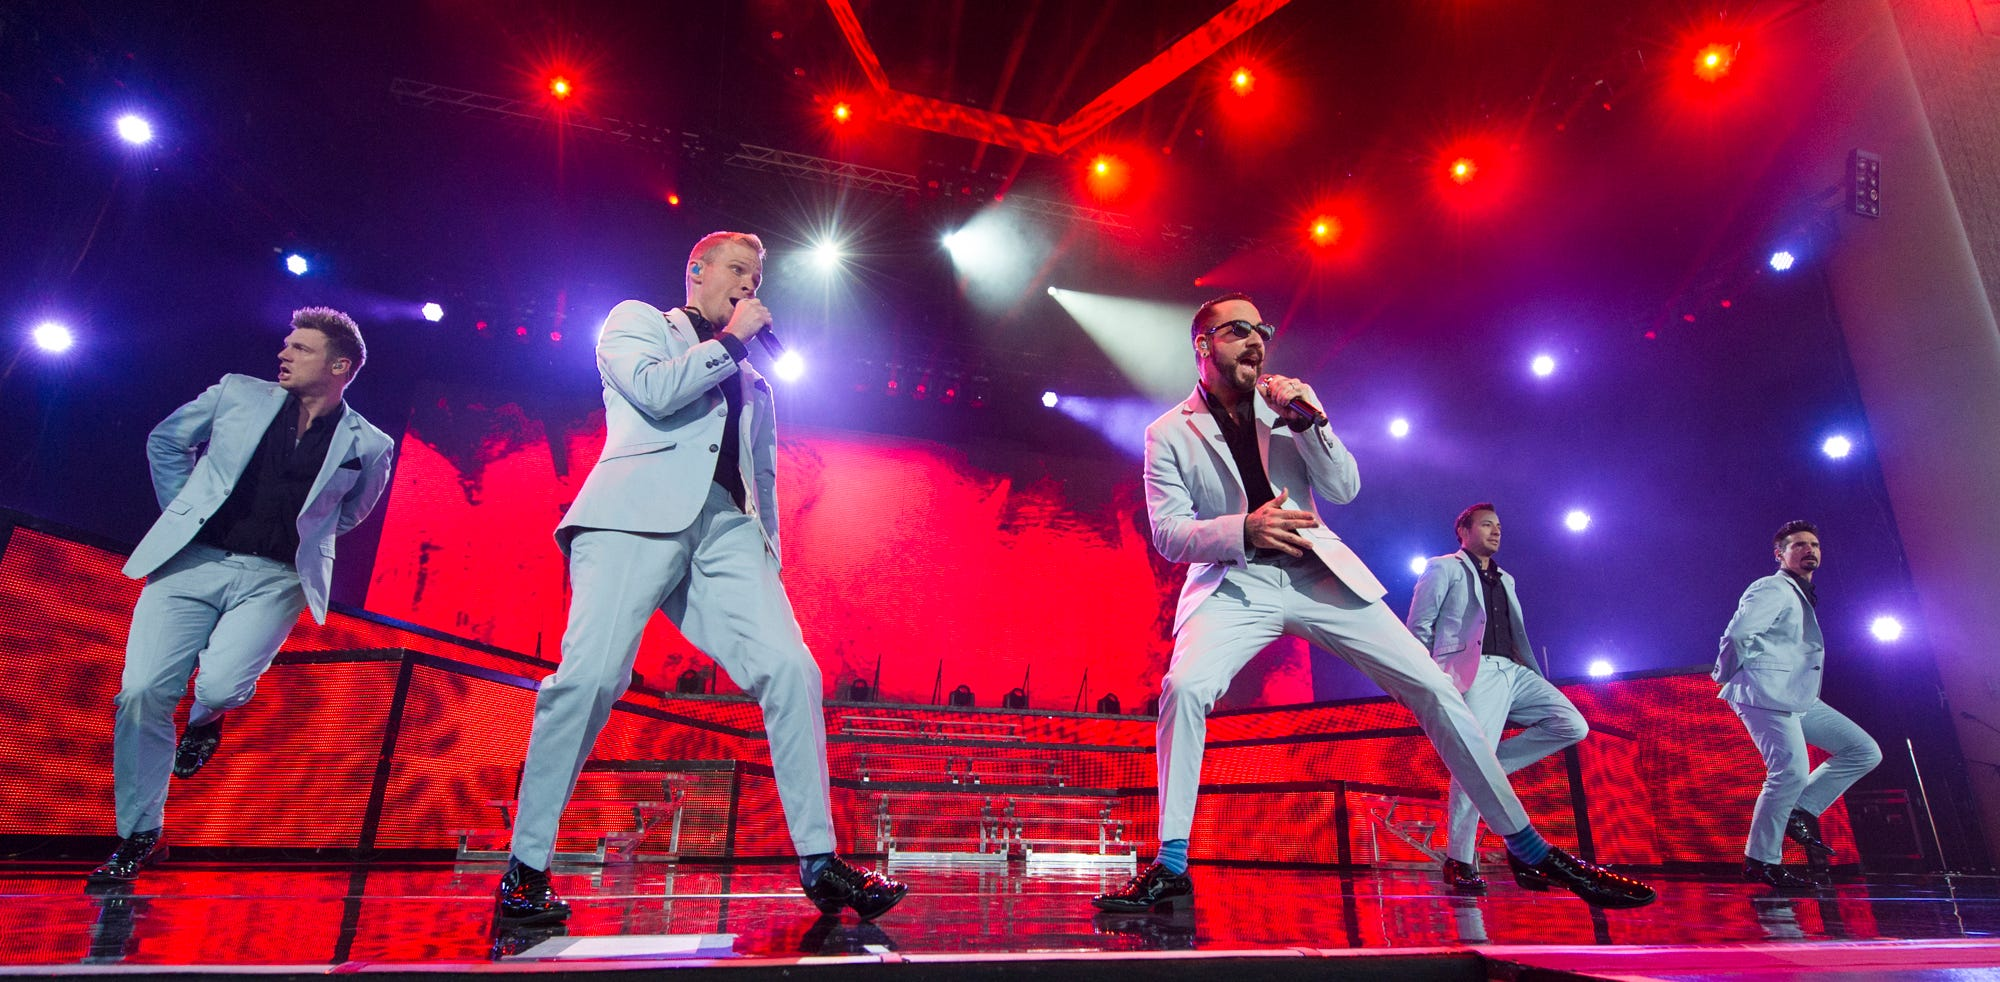 http://www indystar com/picture-gallery/entertainment/music/2013/12